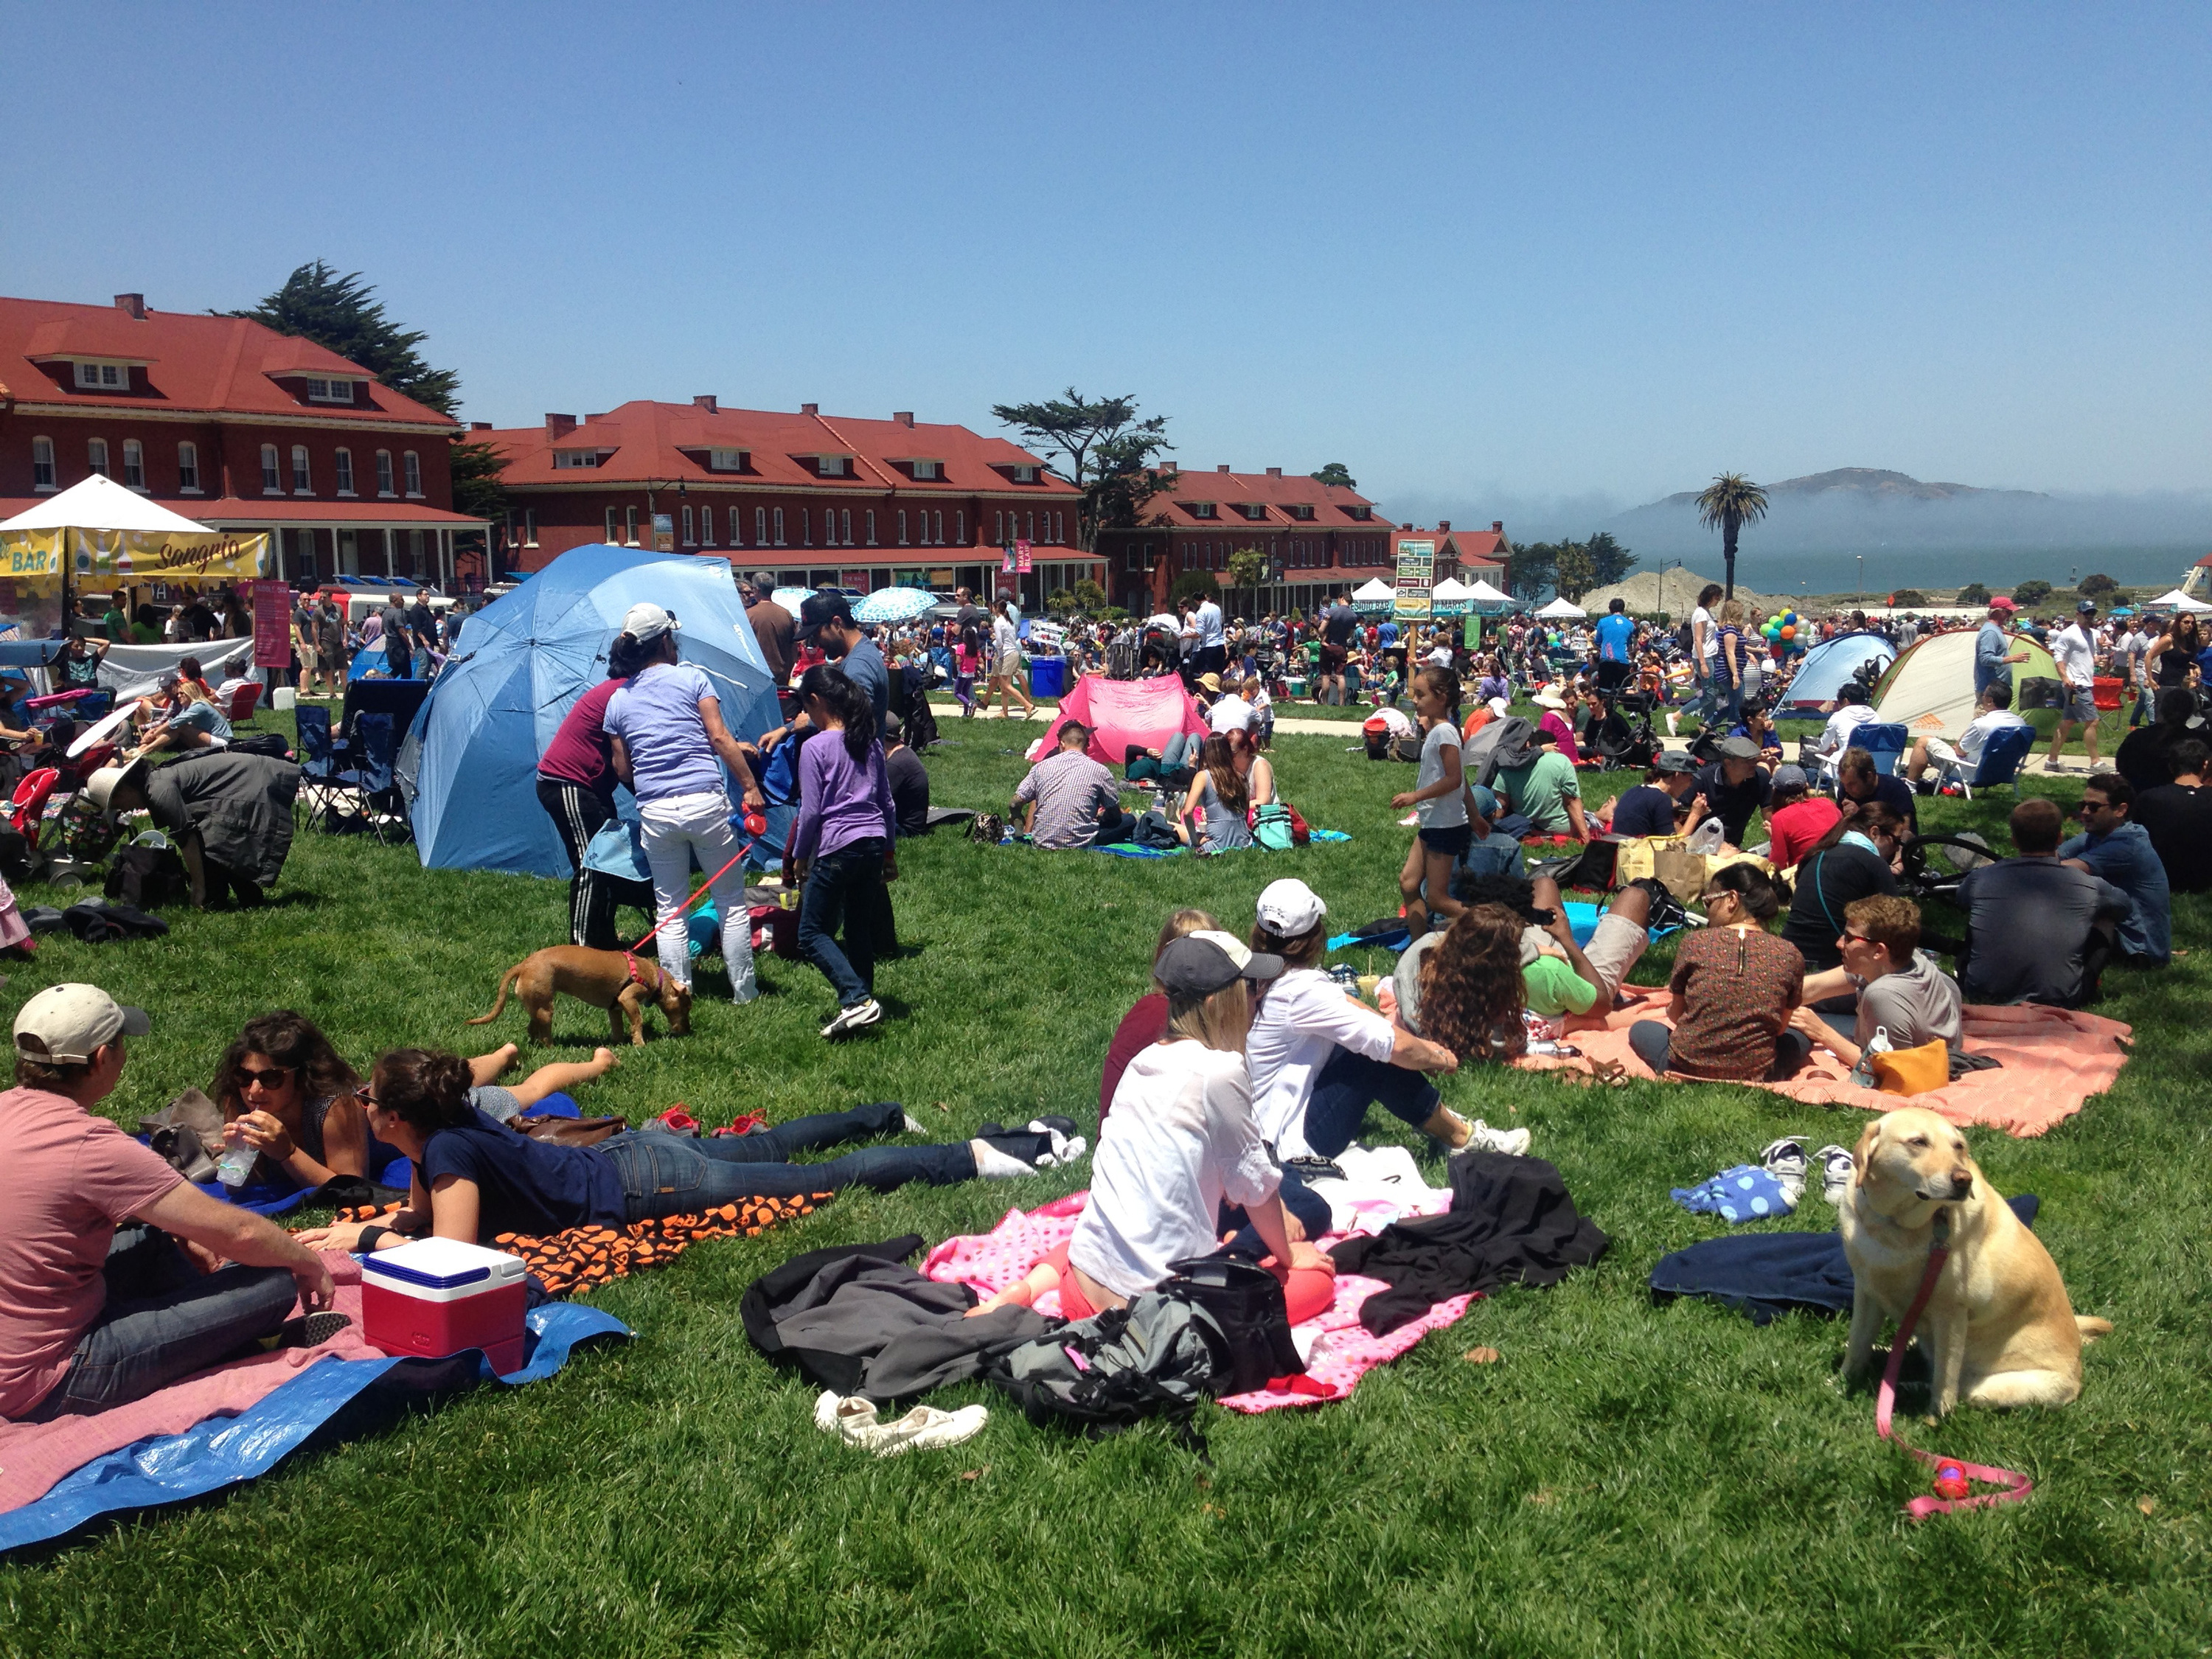 Things to do in San Francisco this weekend